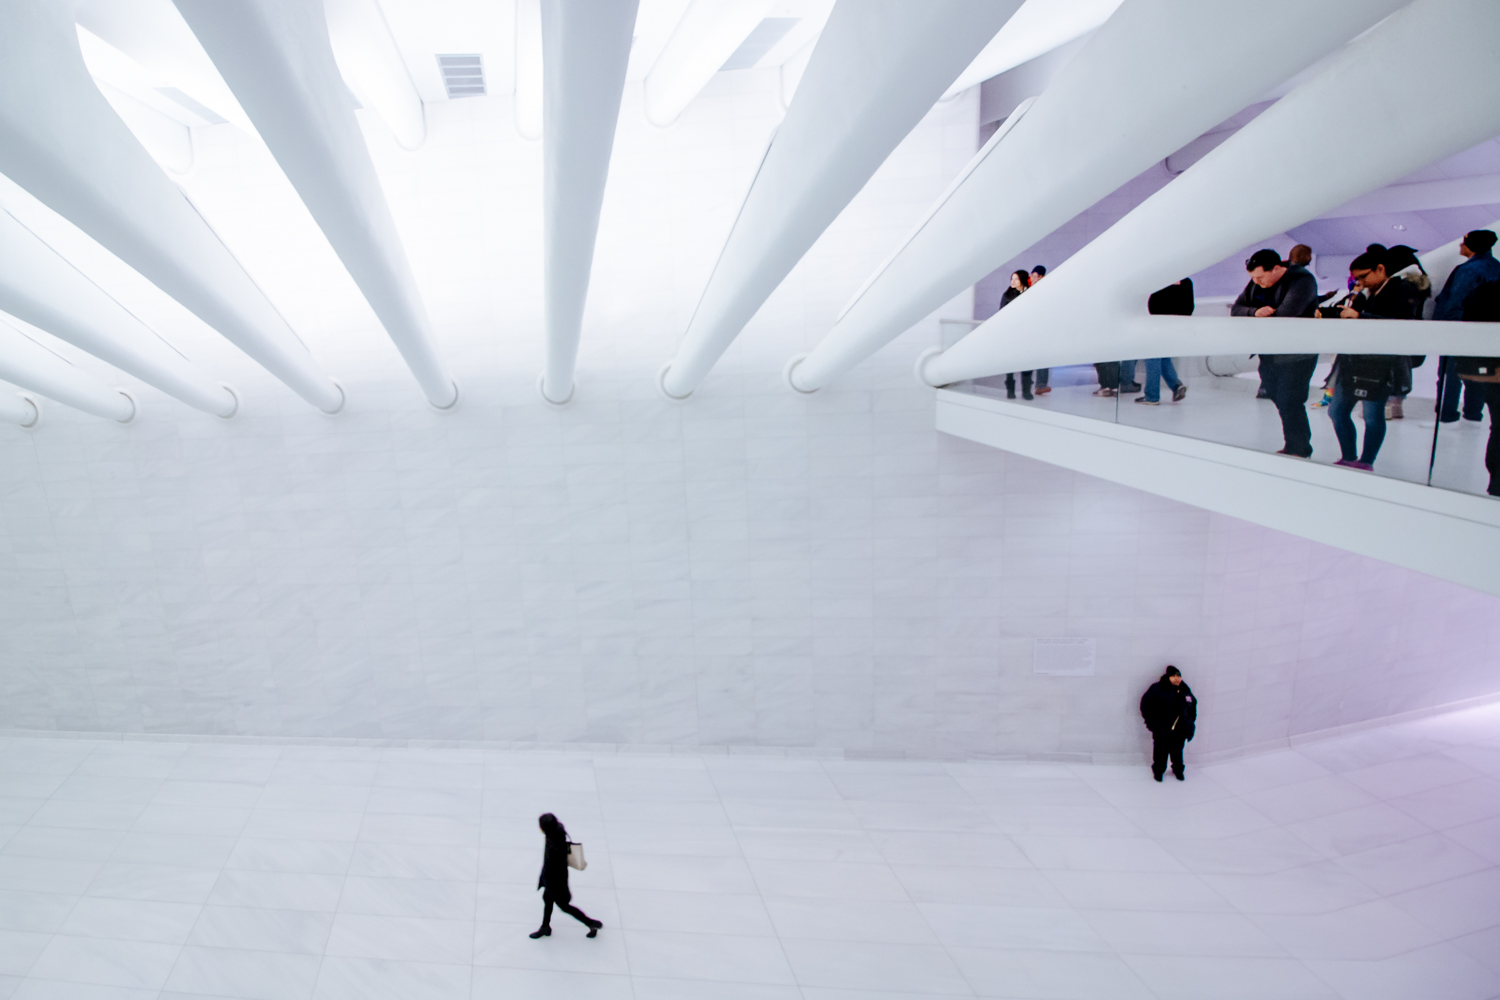 New York City: Inside the Oculus at the World Trade Center transportation hub